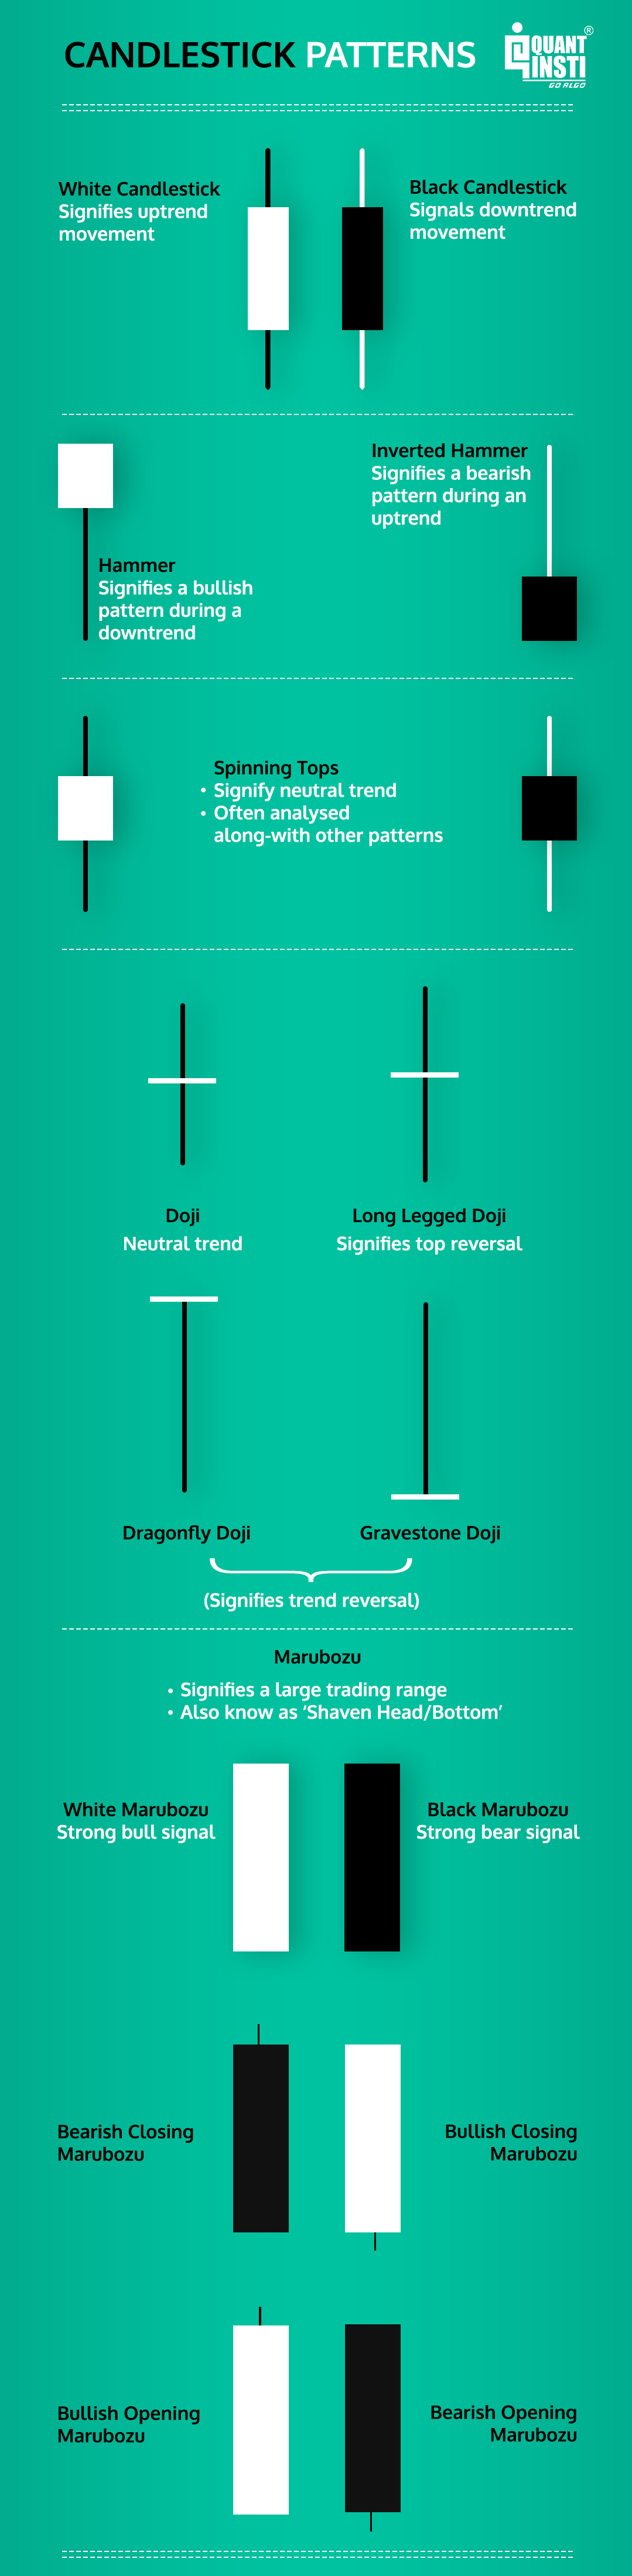 Candlestick patterns, anatomy and their significance